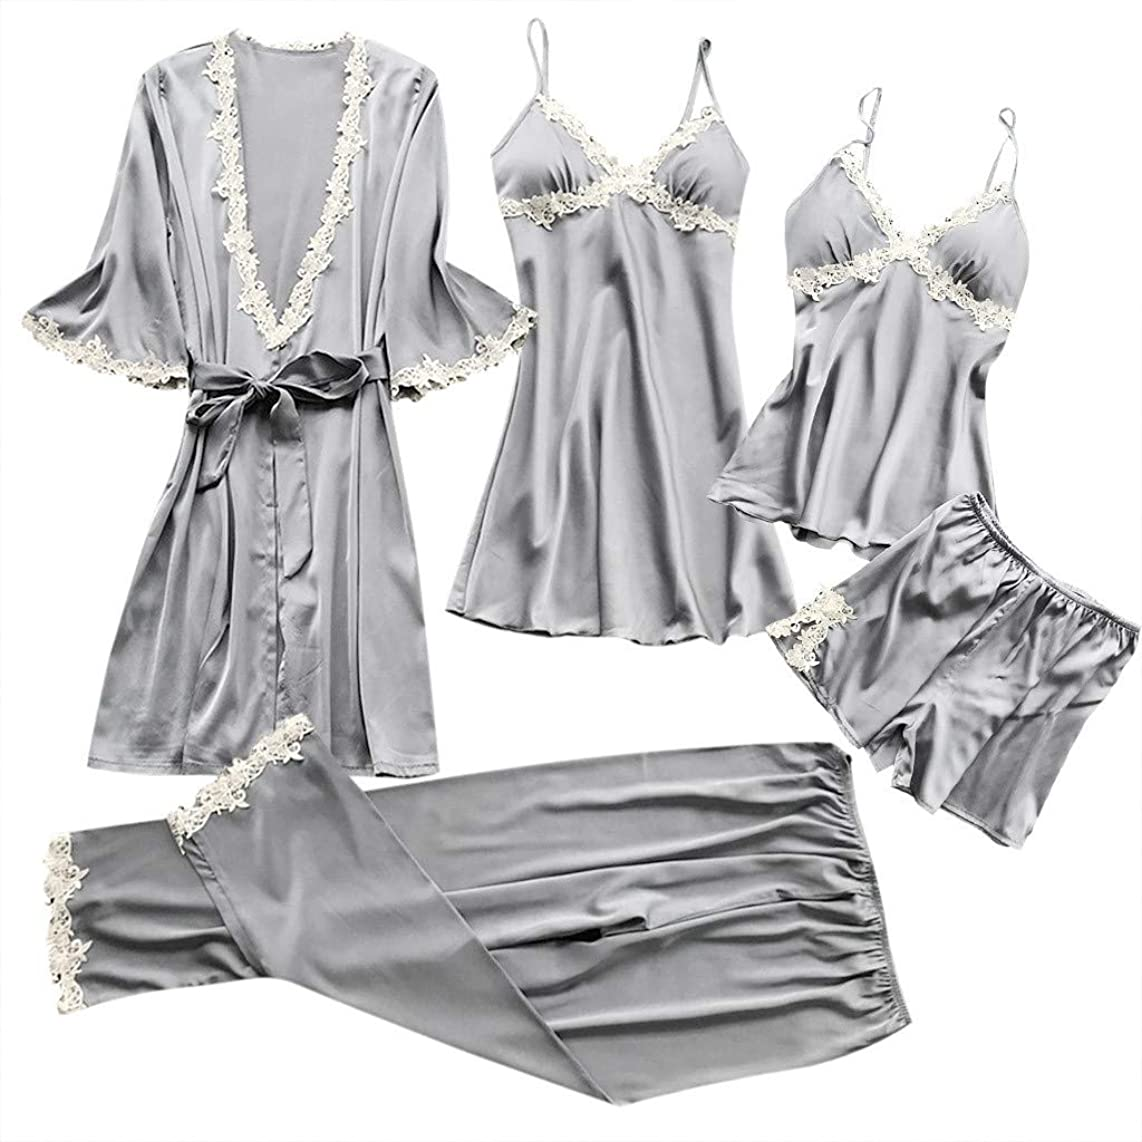 ZOMUSAR Fashion Women Sexy Lace Lingerie Nightwear Underwear Babydoll Sleepwear Dress 5PC Suit